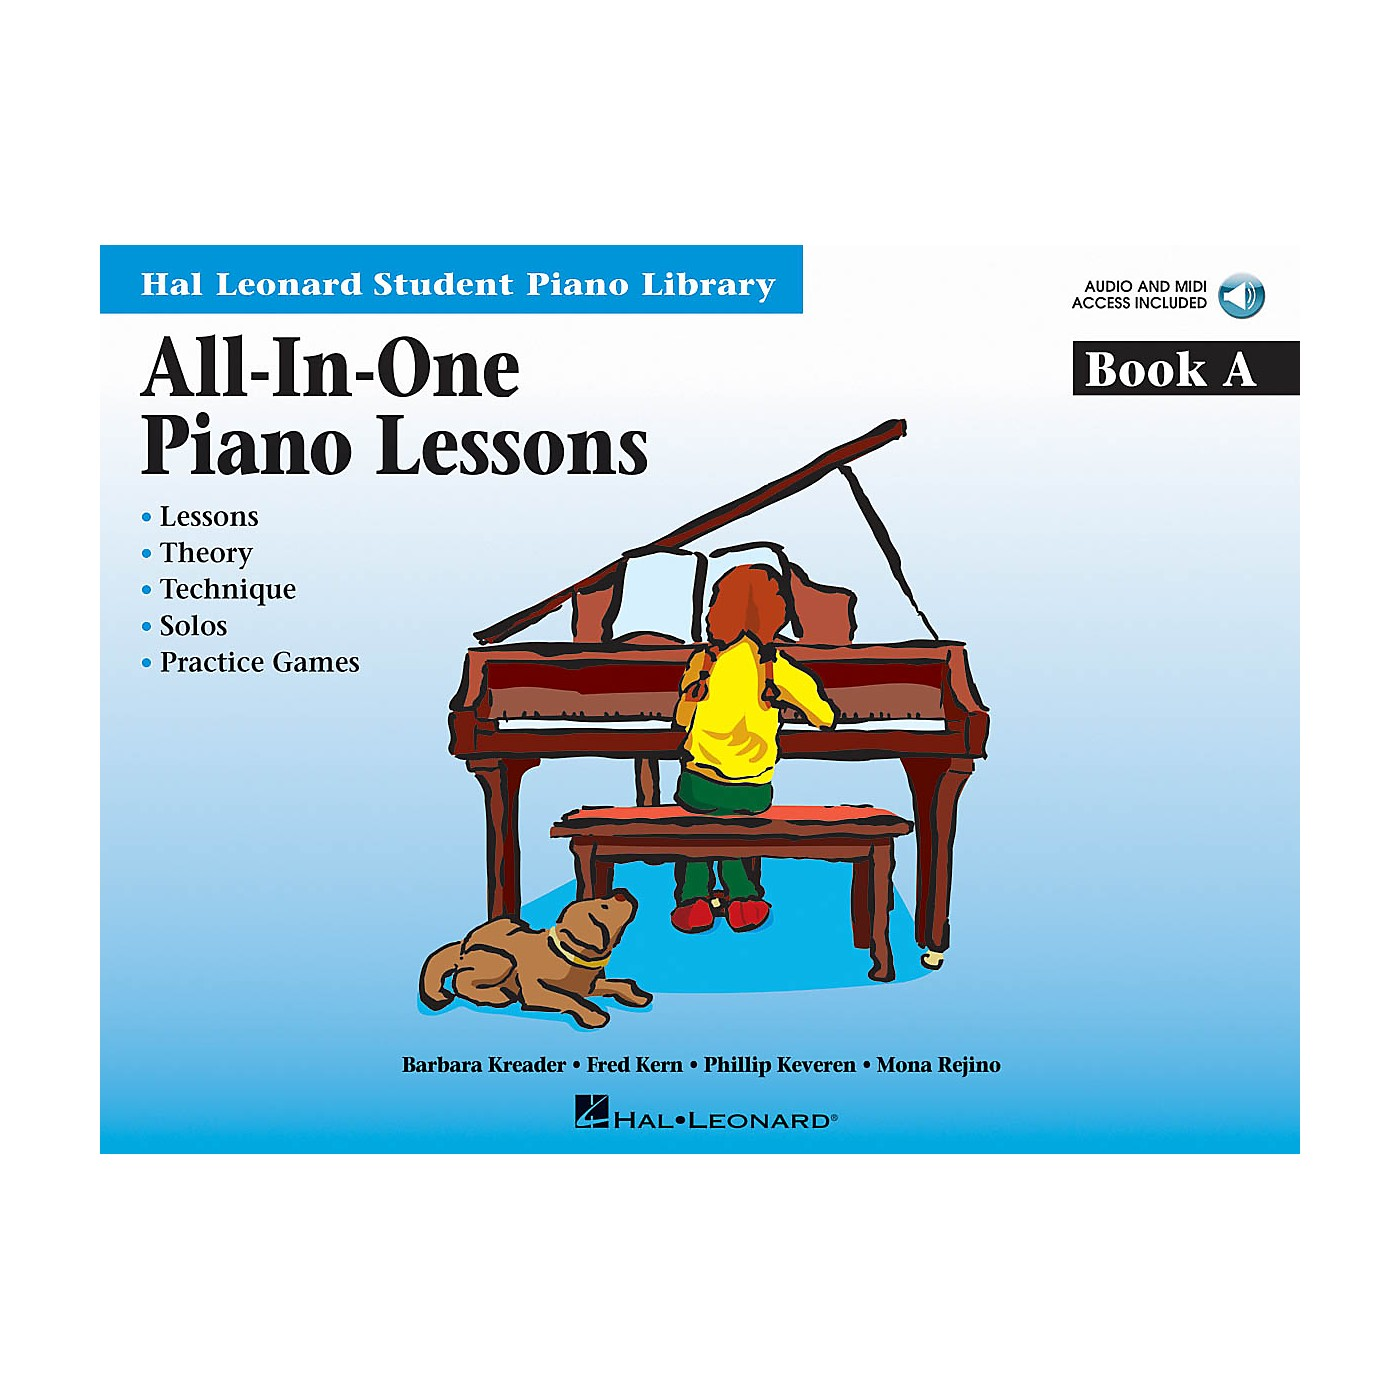 Hal Leonard All-in-One Piano Lessons Book A Educational Piano International Edition Series Softcover Audio Online thumbnail